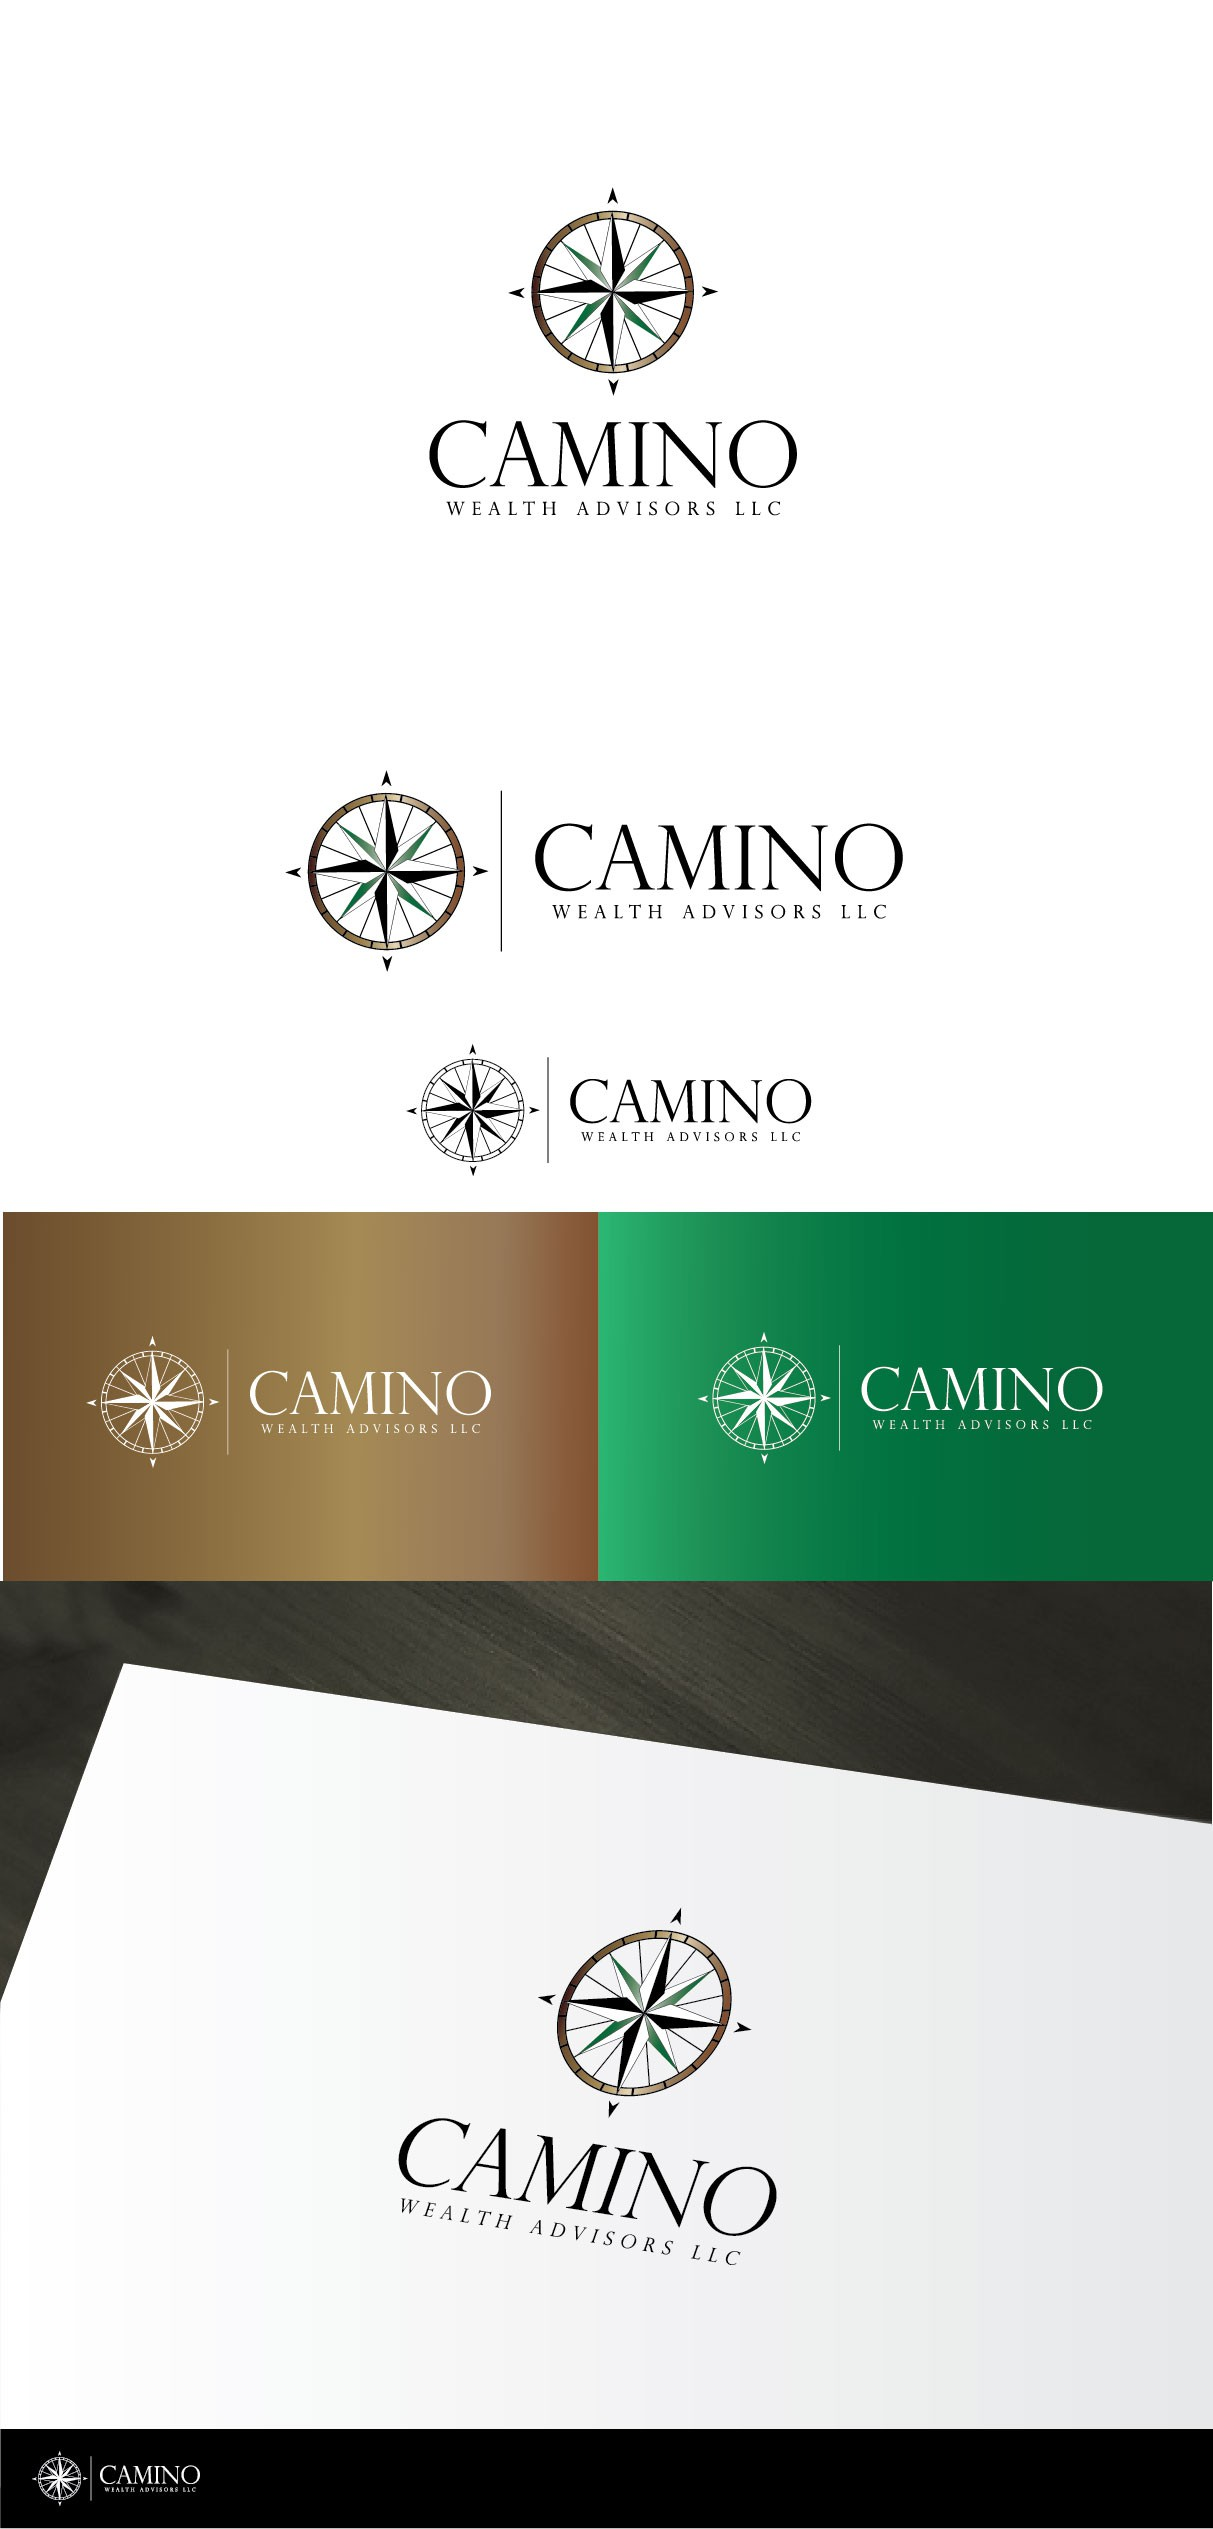 Create a classic elegant compass rose logo for Camino Wealth Advisors (financial planning firm)